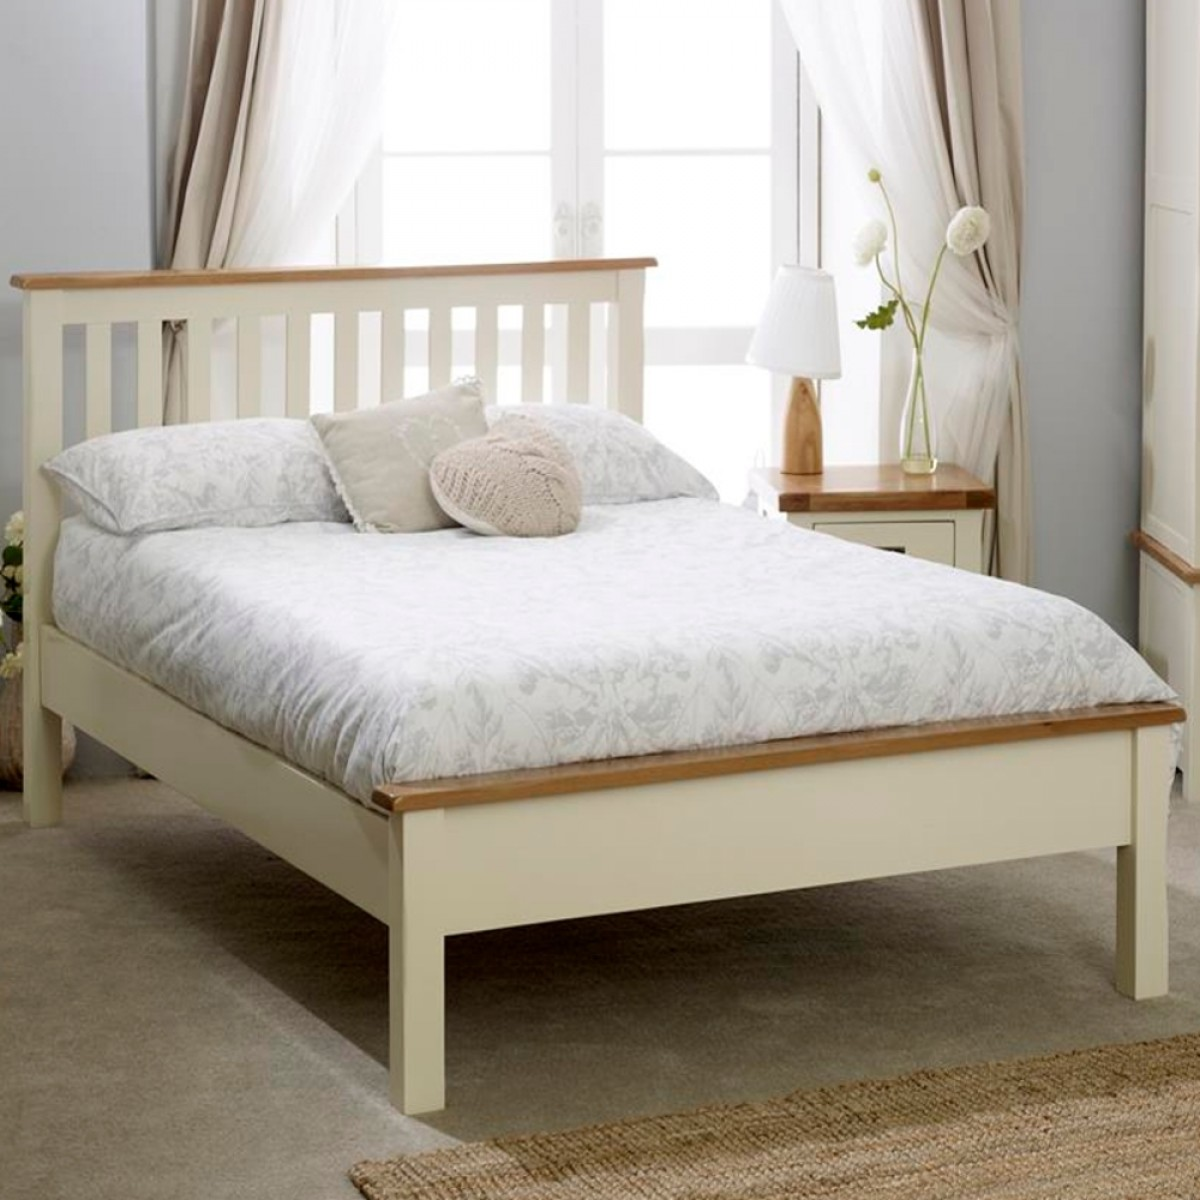 New Hampshire Cream and Oak Low Foot End Wooden Bed